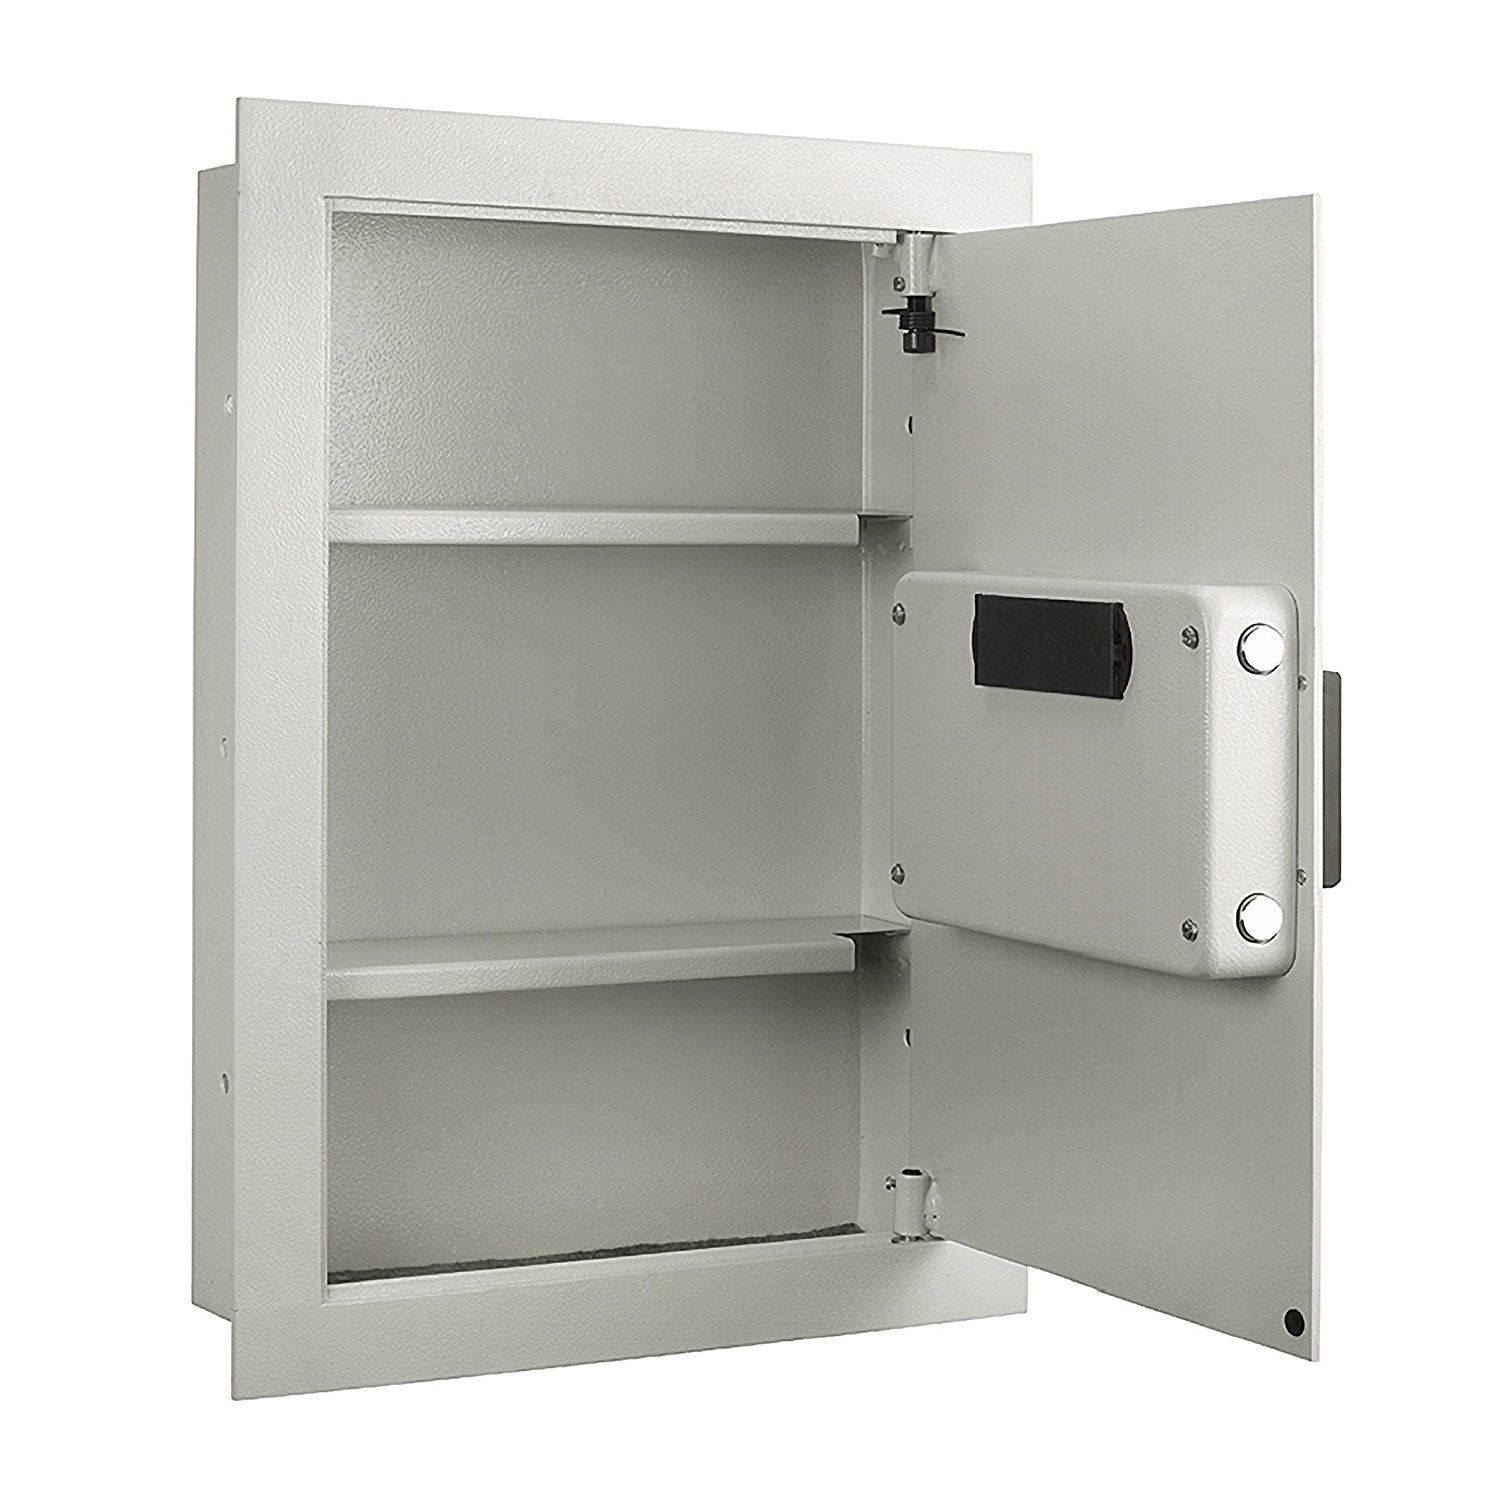 Paragon 7750 Electronic Wall Lock And Safe 83 Cf Hidden In Wall Large Safe Amazon Com Home Improvement Wall Safe Safe Lock Floor Safe